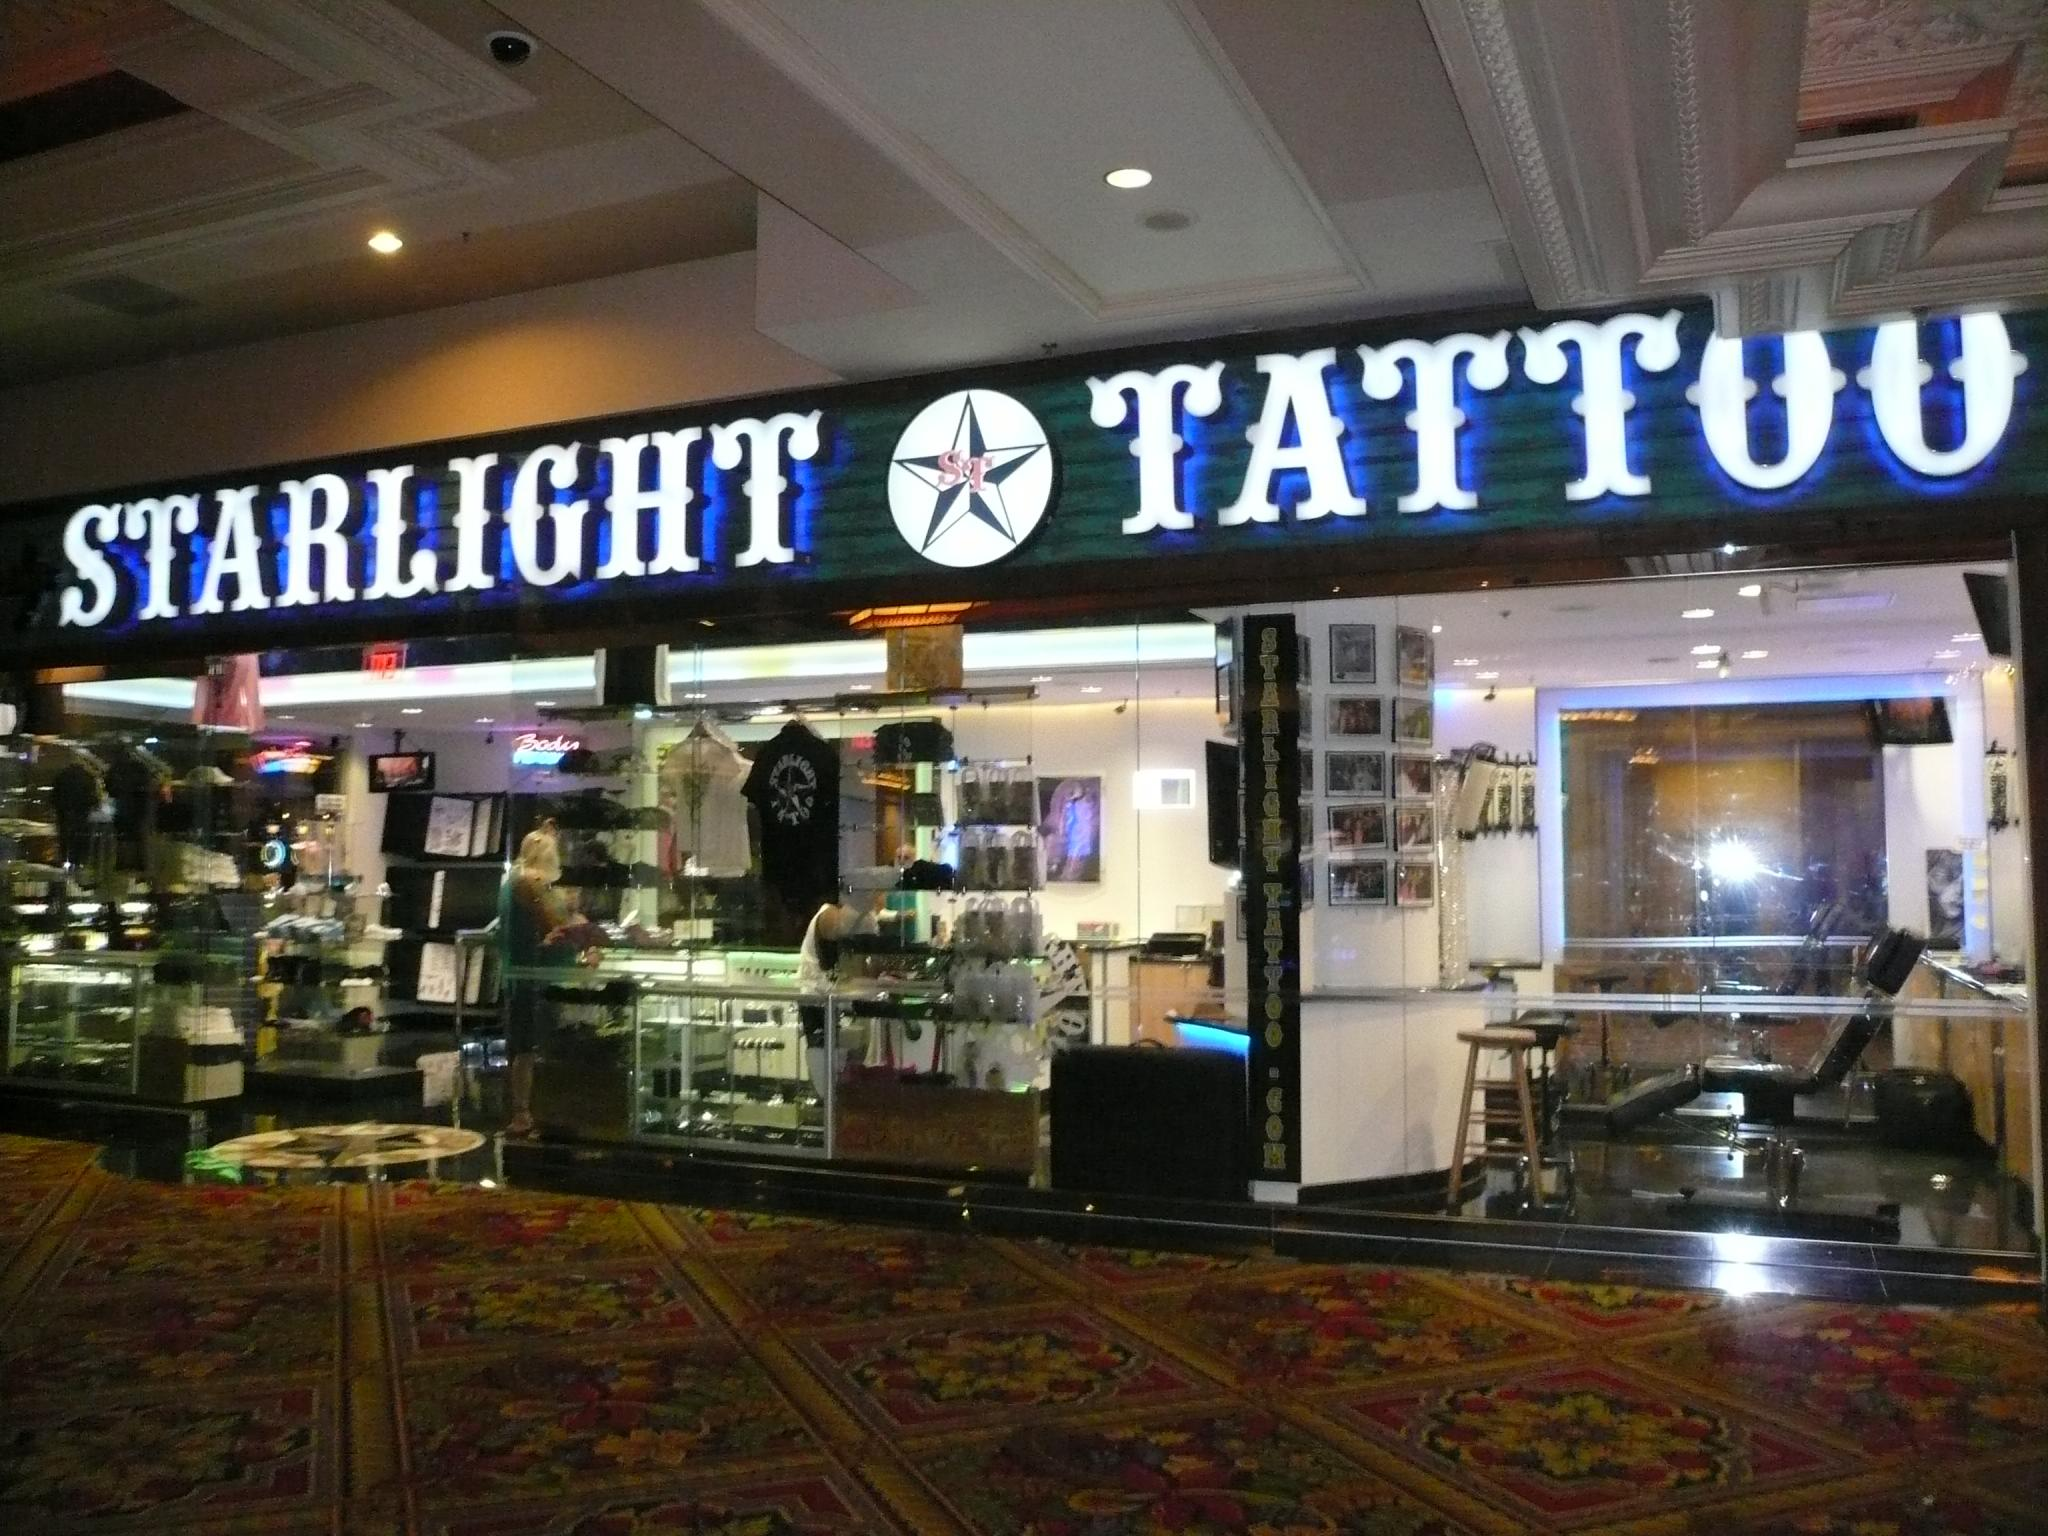 Best tattoo shop - Las Vegas Forum - TripAdvisor